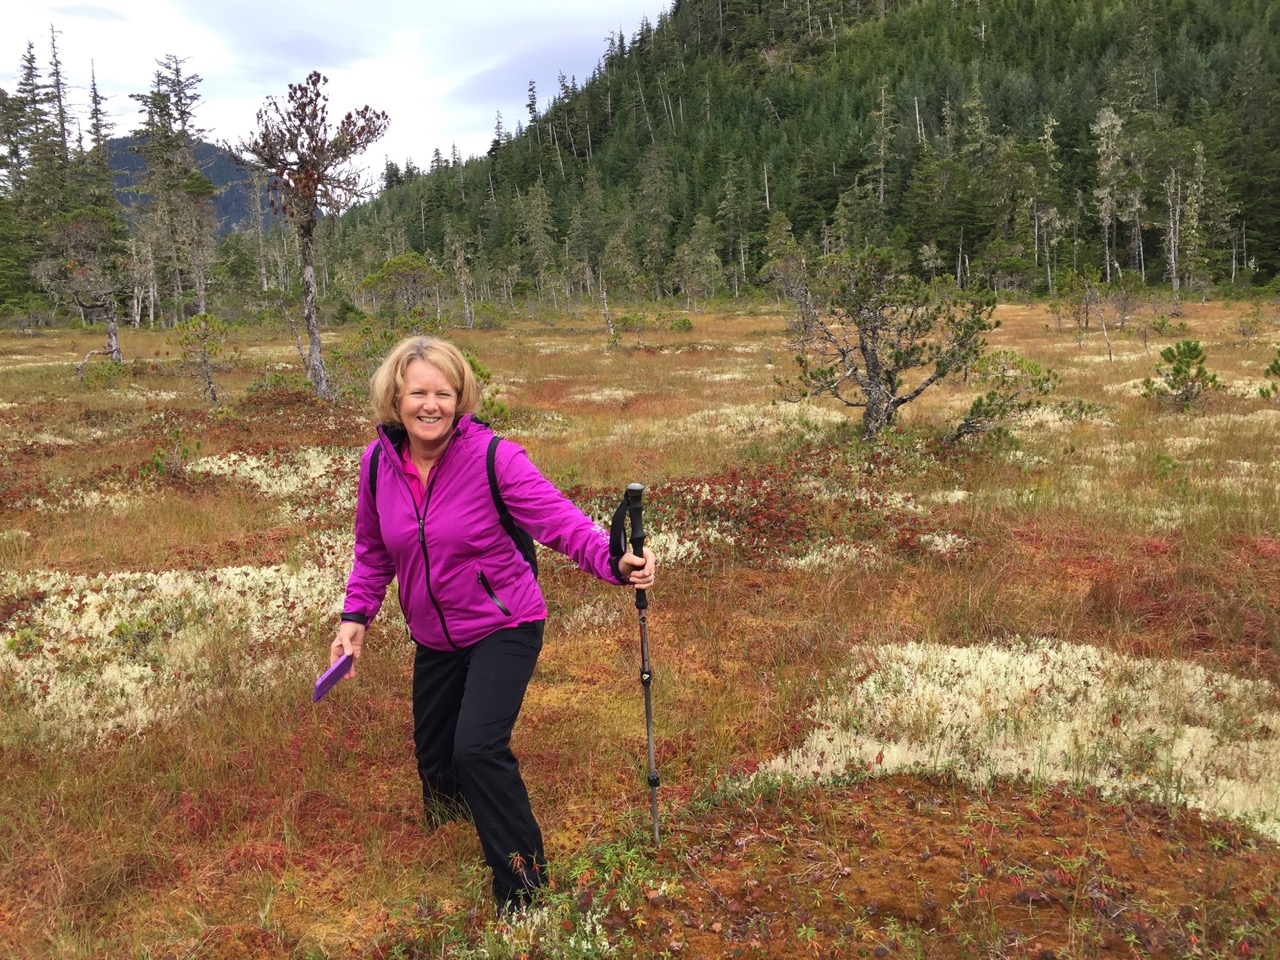 Heather in the muskeg!- Uncruise, Alaska